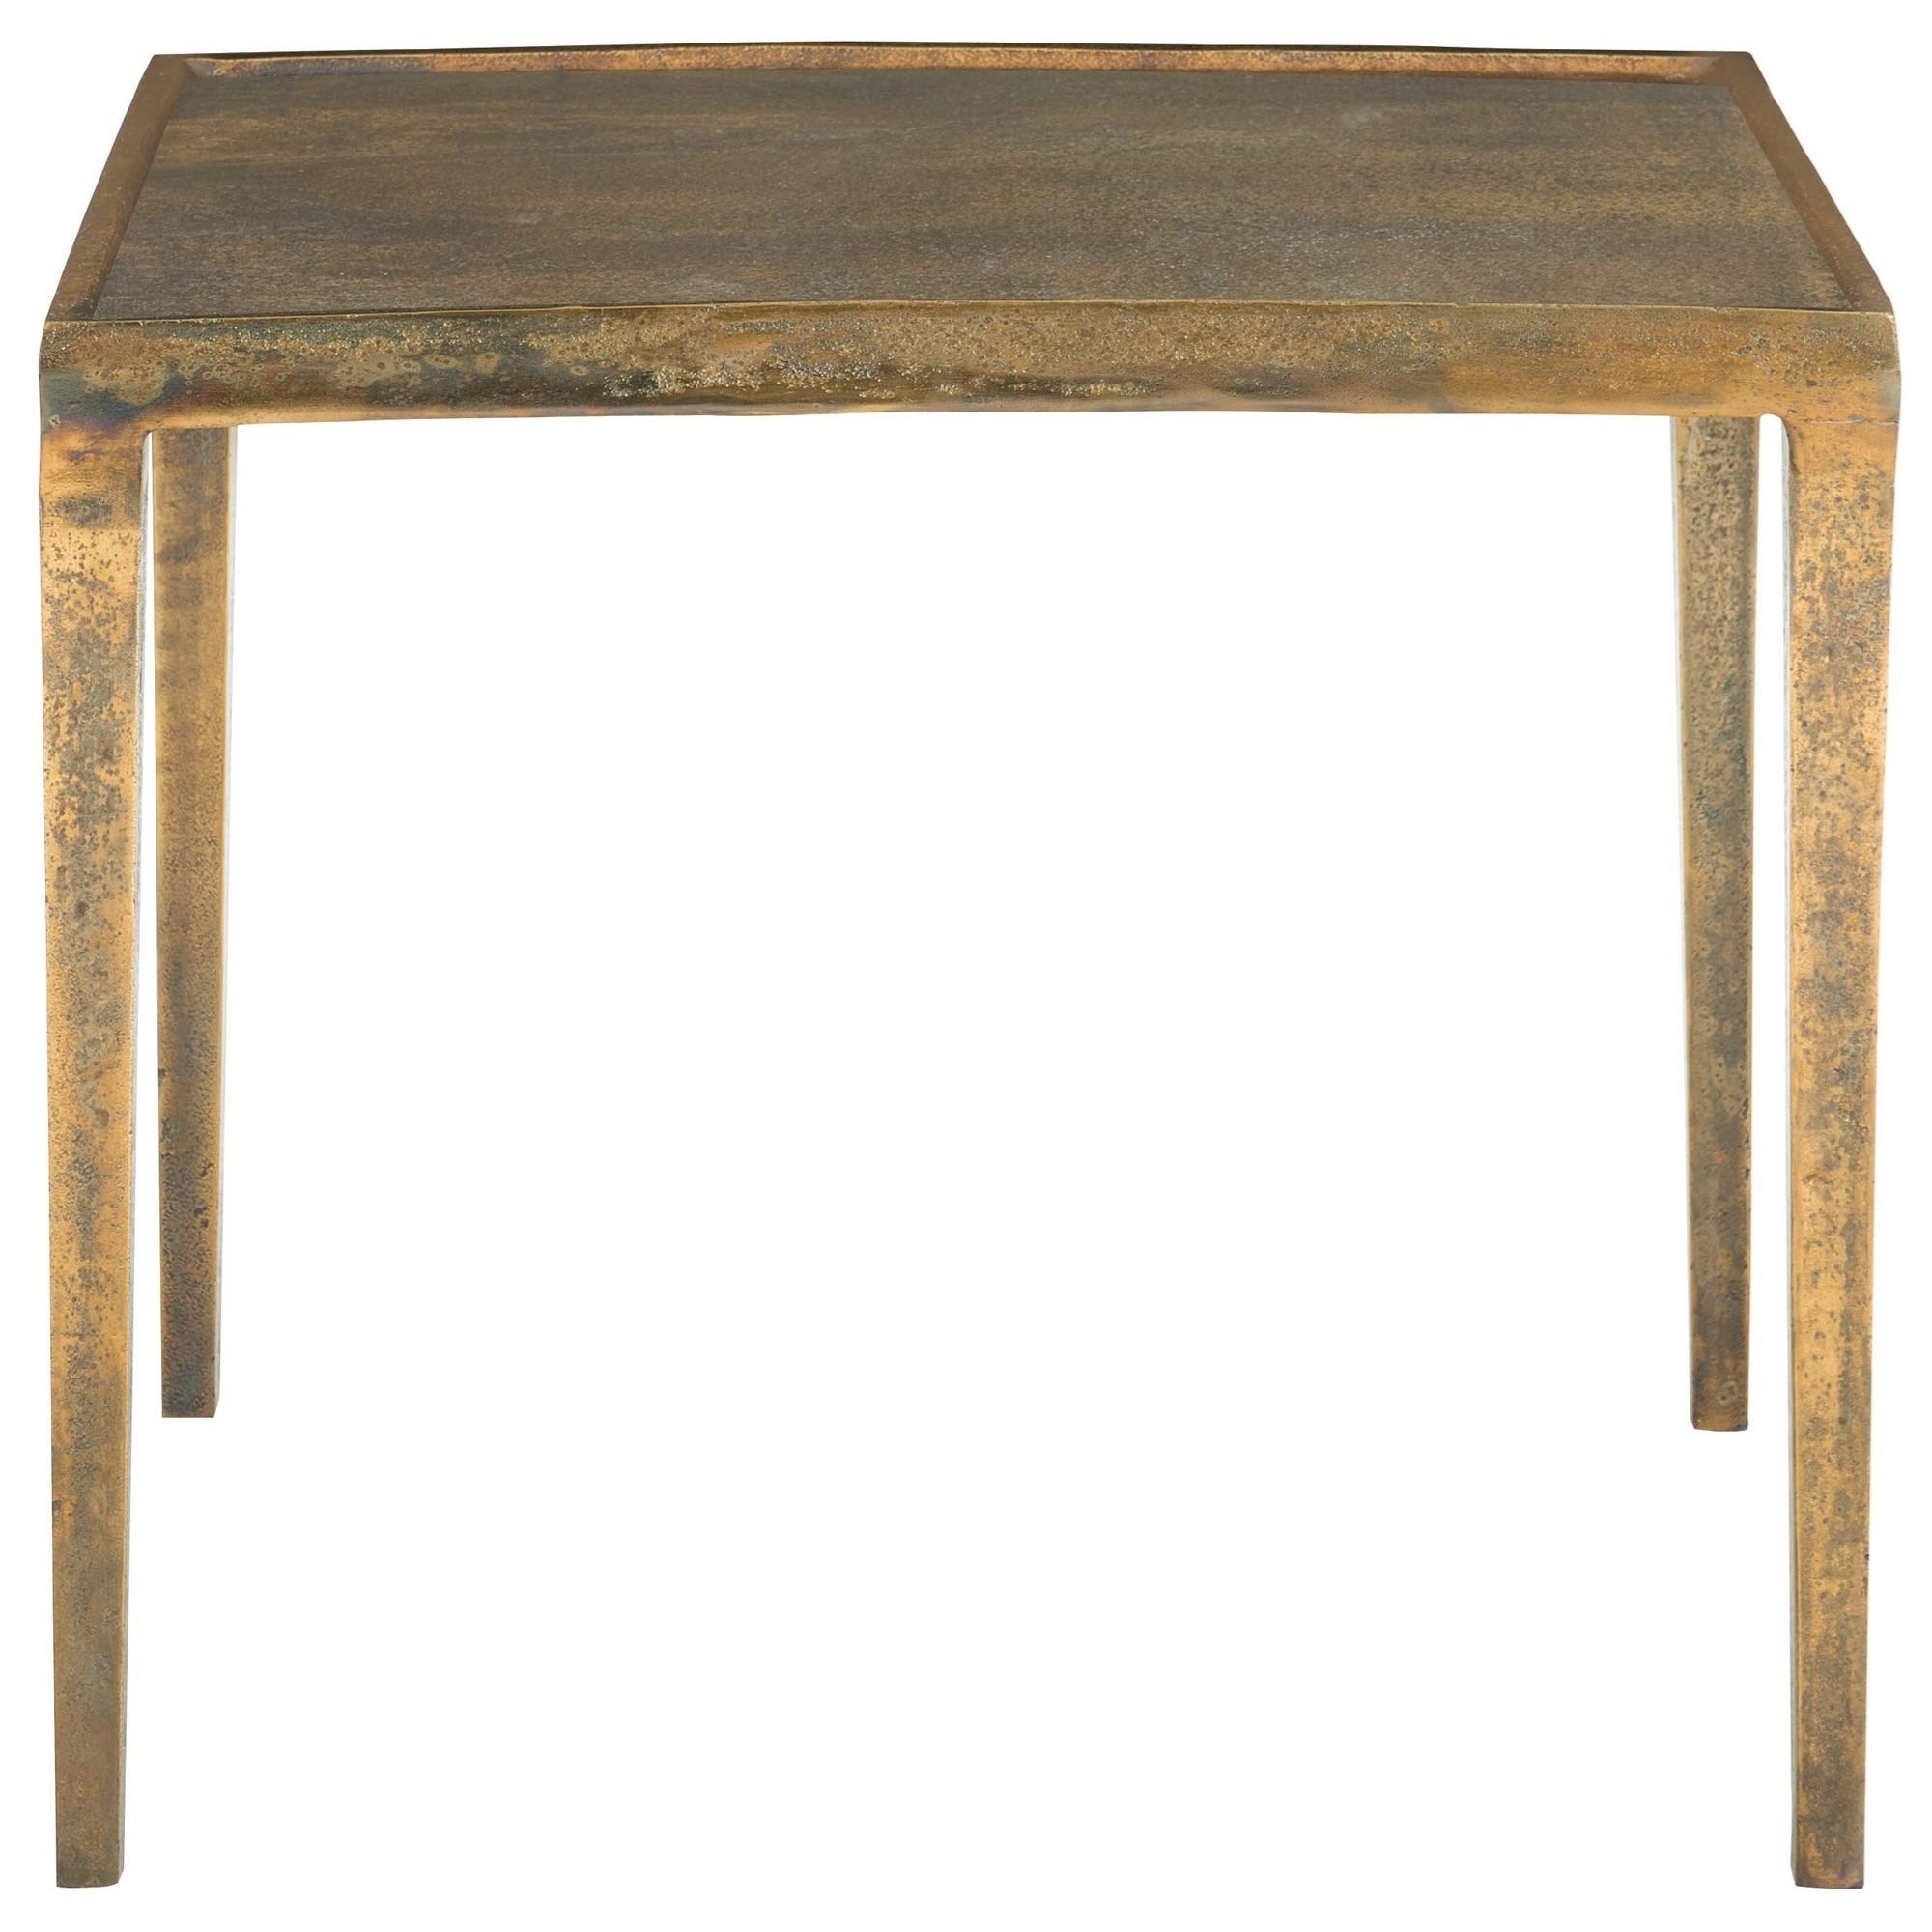 Bernhardt Benson Rectangular End Table | Louis Mohana Furniture Inside Current Benson Rectangle Dining Tables (Image 11 of 20)